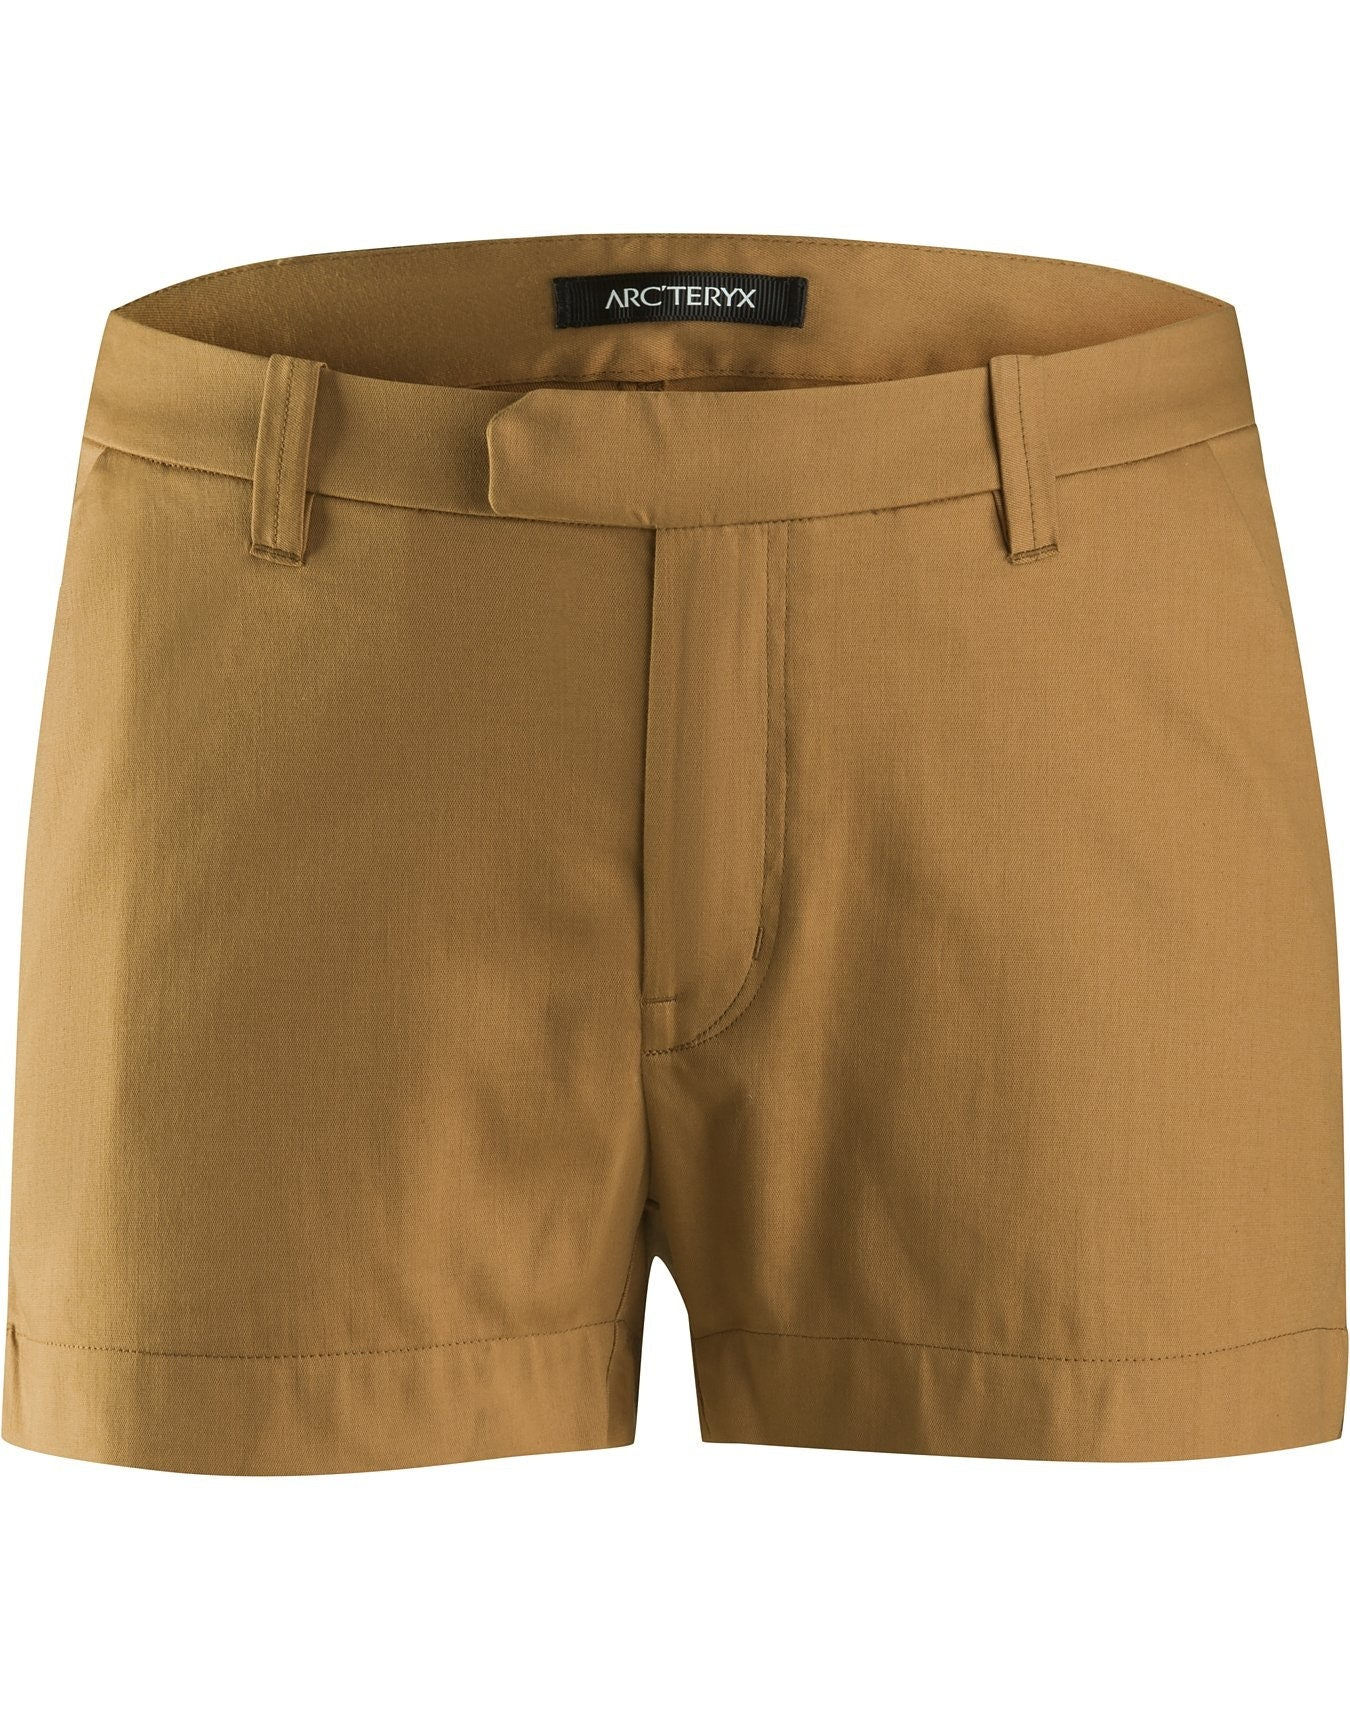 ARC'TERYX W'S SHORTS GING 2 DEVIS SHORT